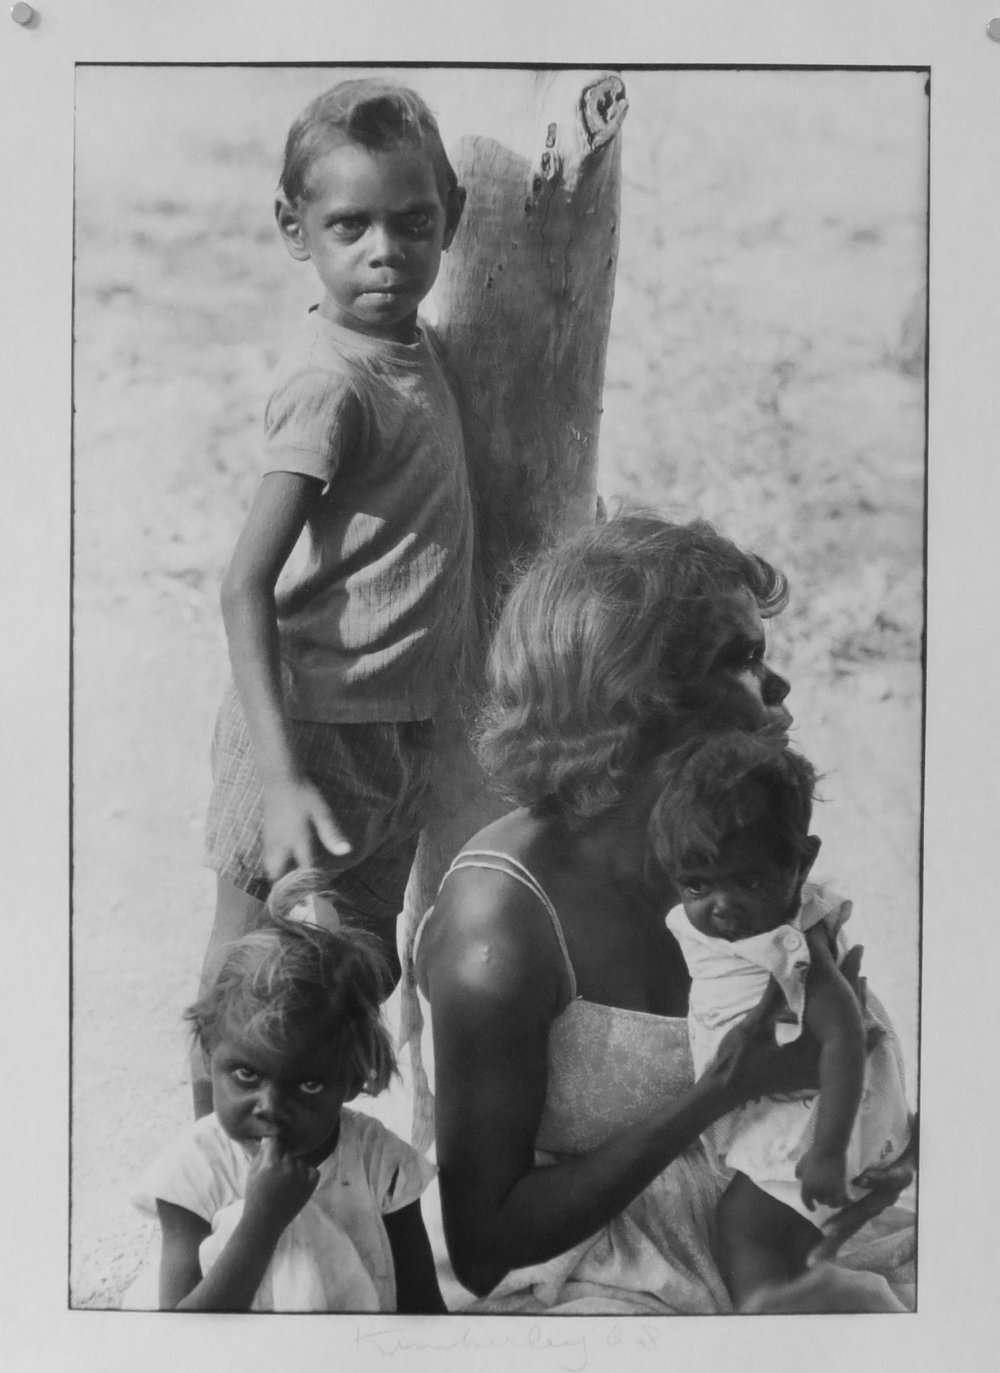 27. Richard Woldendorp, 'Family Waiting for Bush Clinic, Brooking Springs, Kimberley WA', RLW68, taken and printed in 1968, Vintage Print